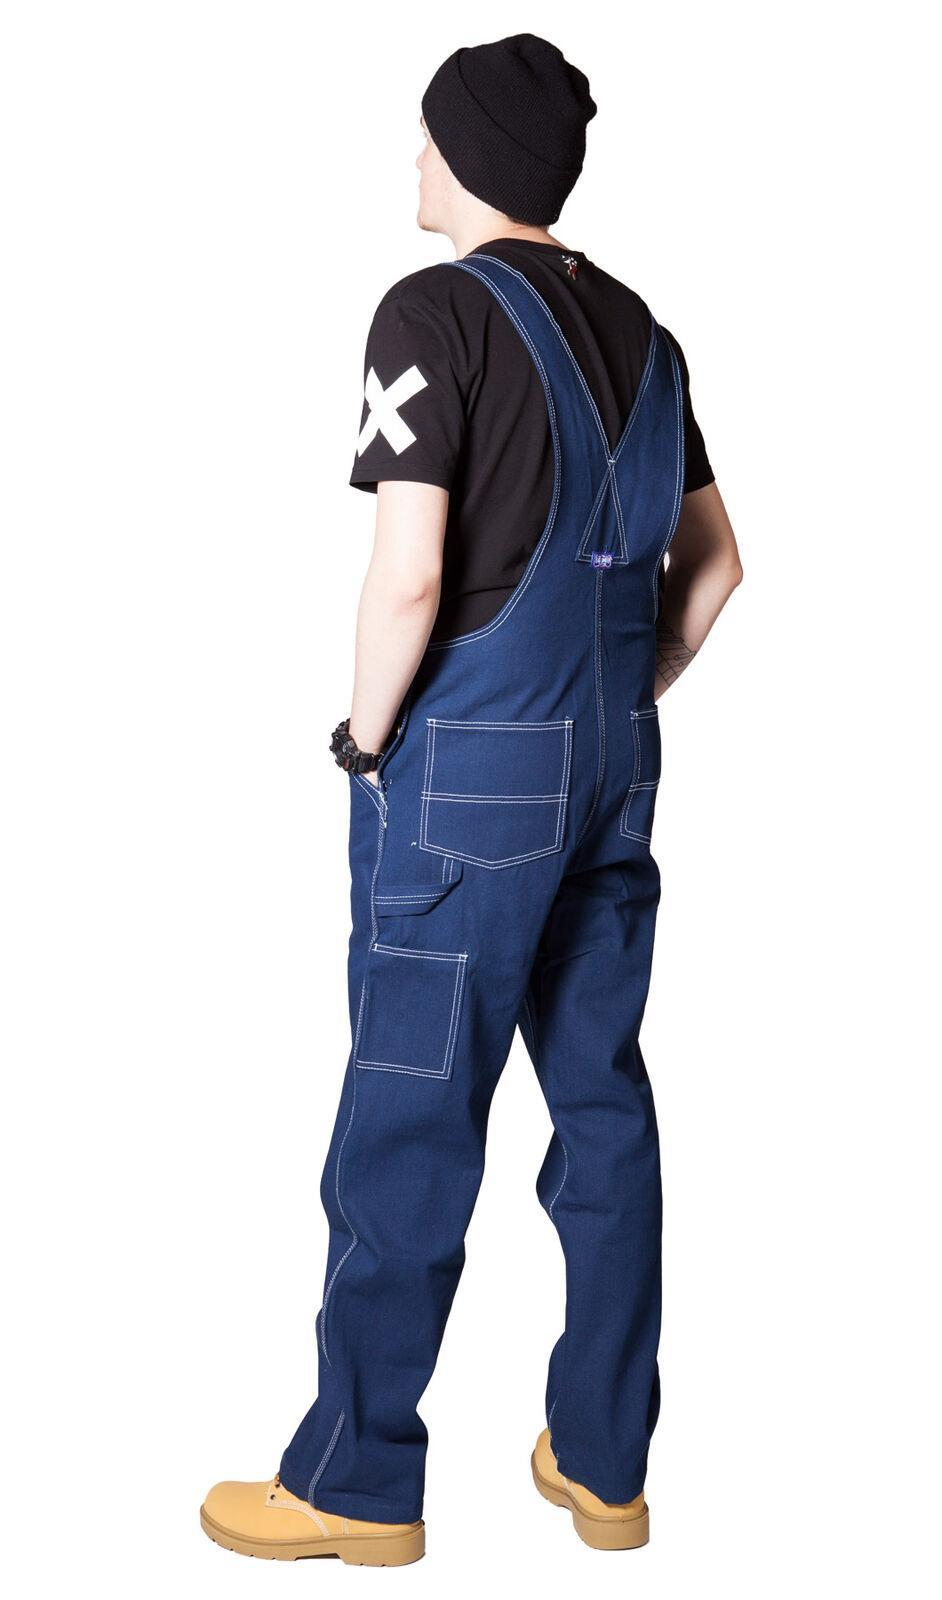 Angled full rear pose wearing 'Big Smith' brand cotton bib overalls from Dungarees Online.